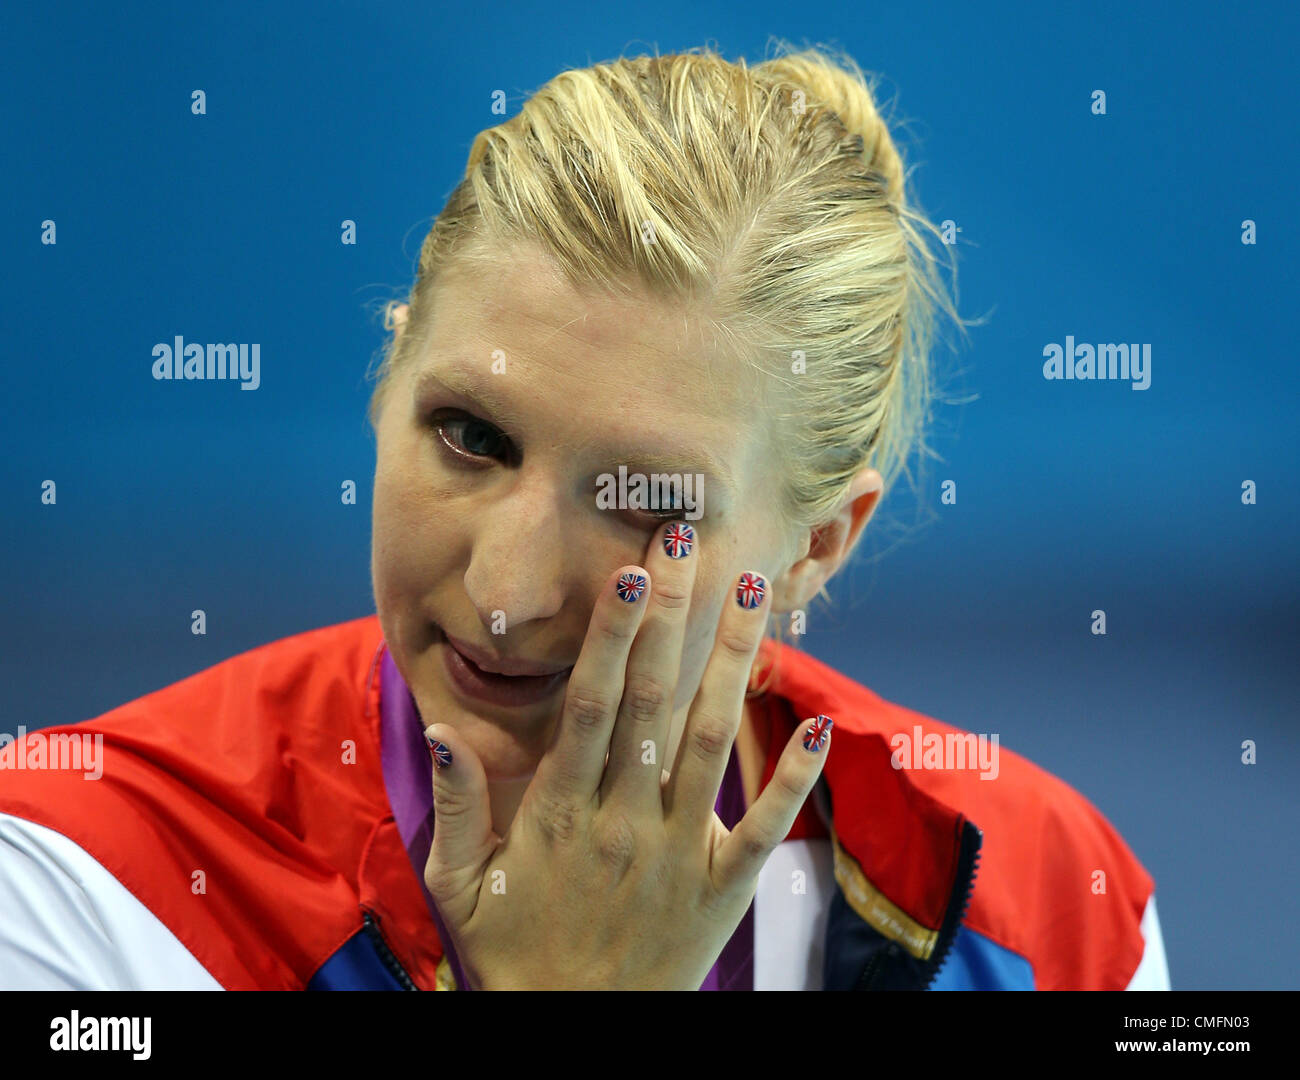 REBECCA ADLINGTON CRIES AT CER GREAT BRITAIN STRATFORD LONDON ENGLAND 03 August 2012 - Stock Image